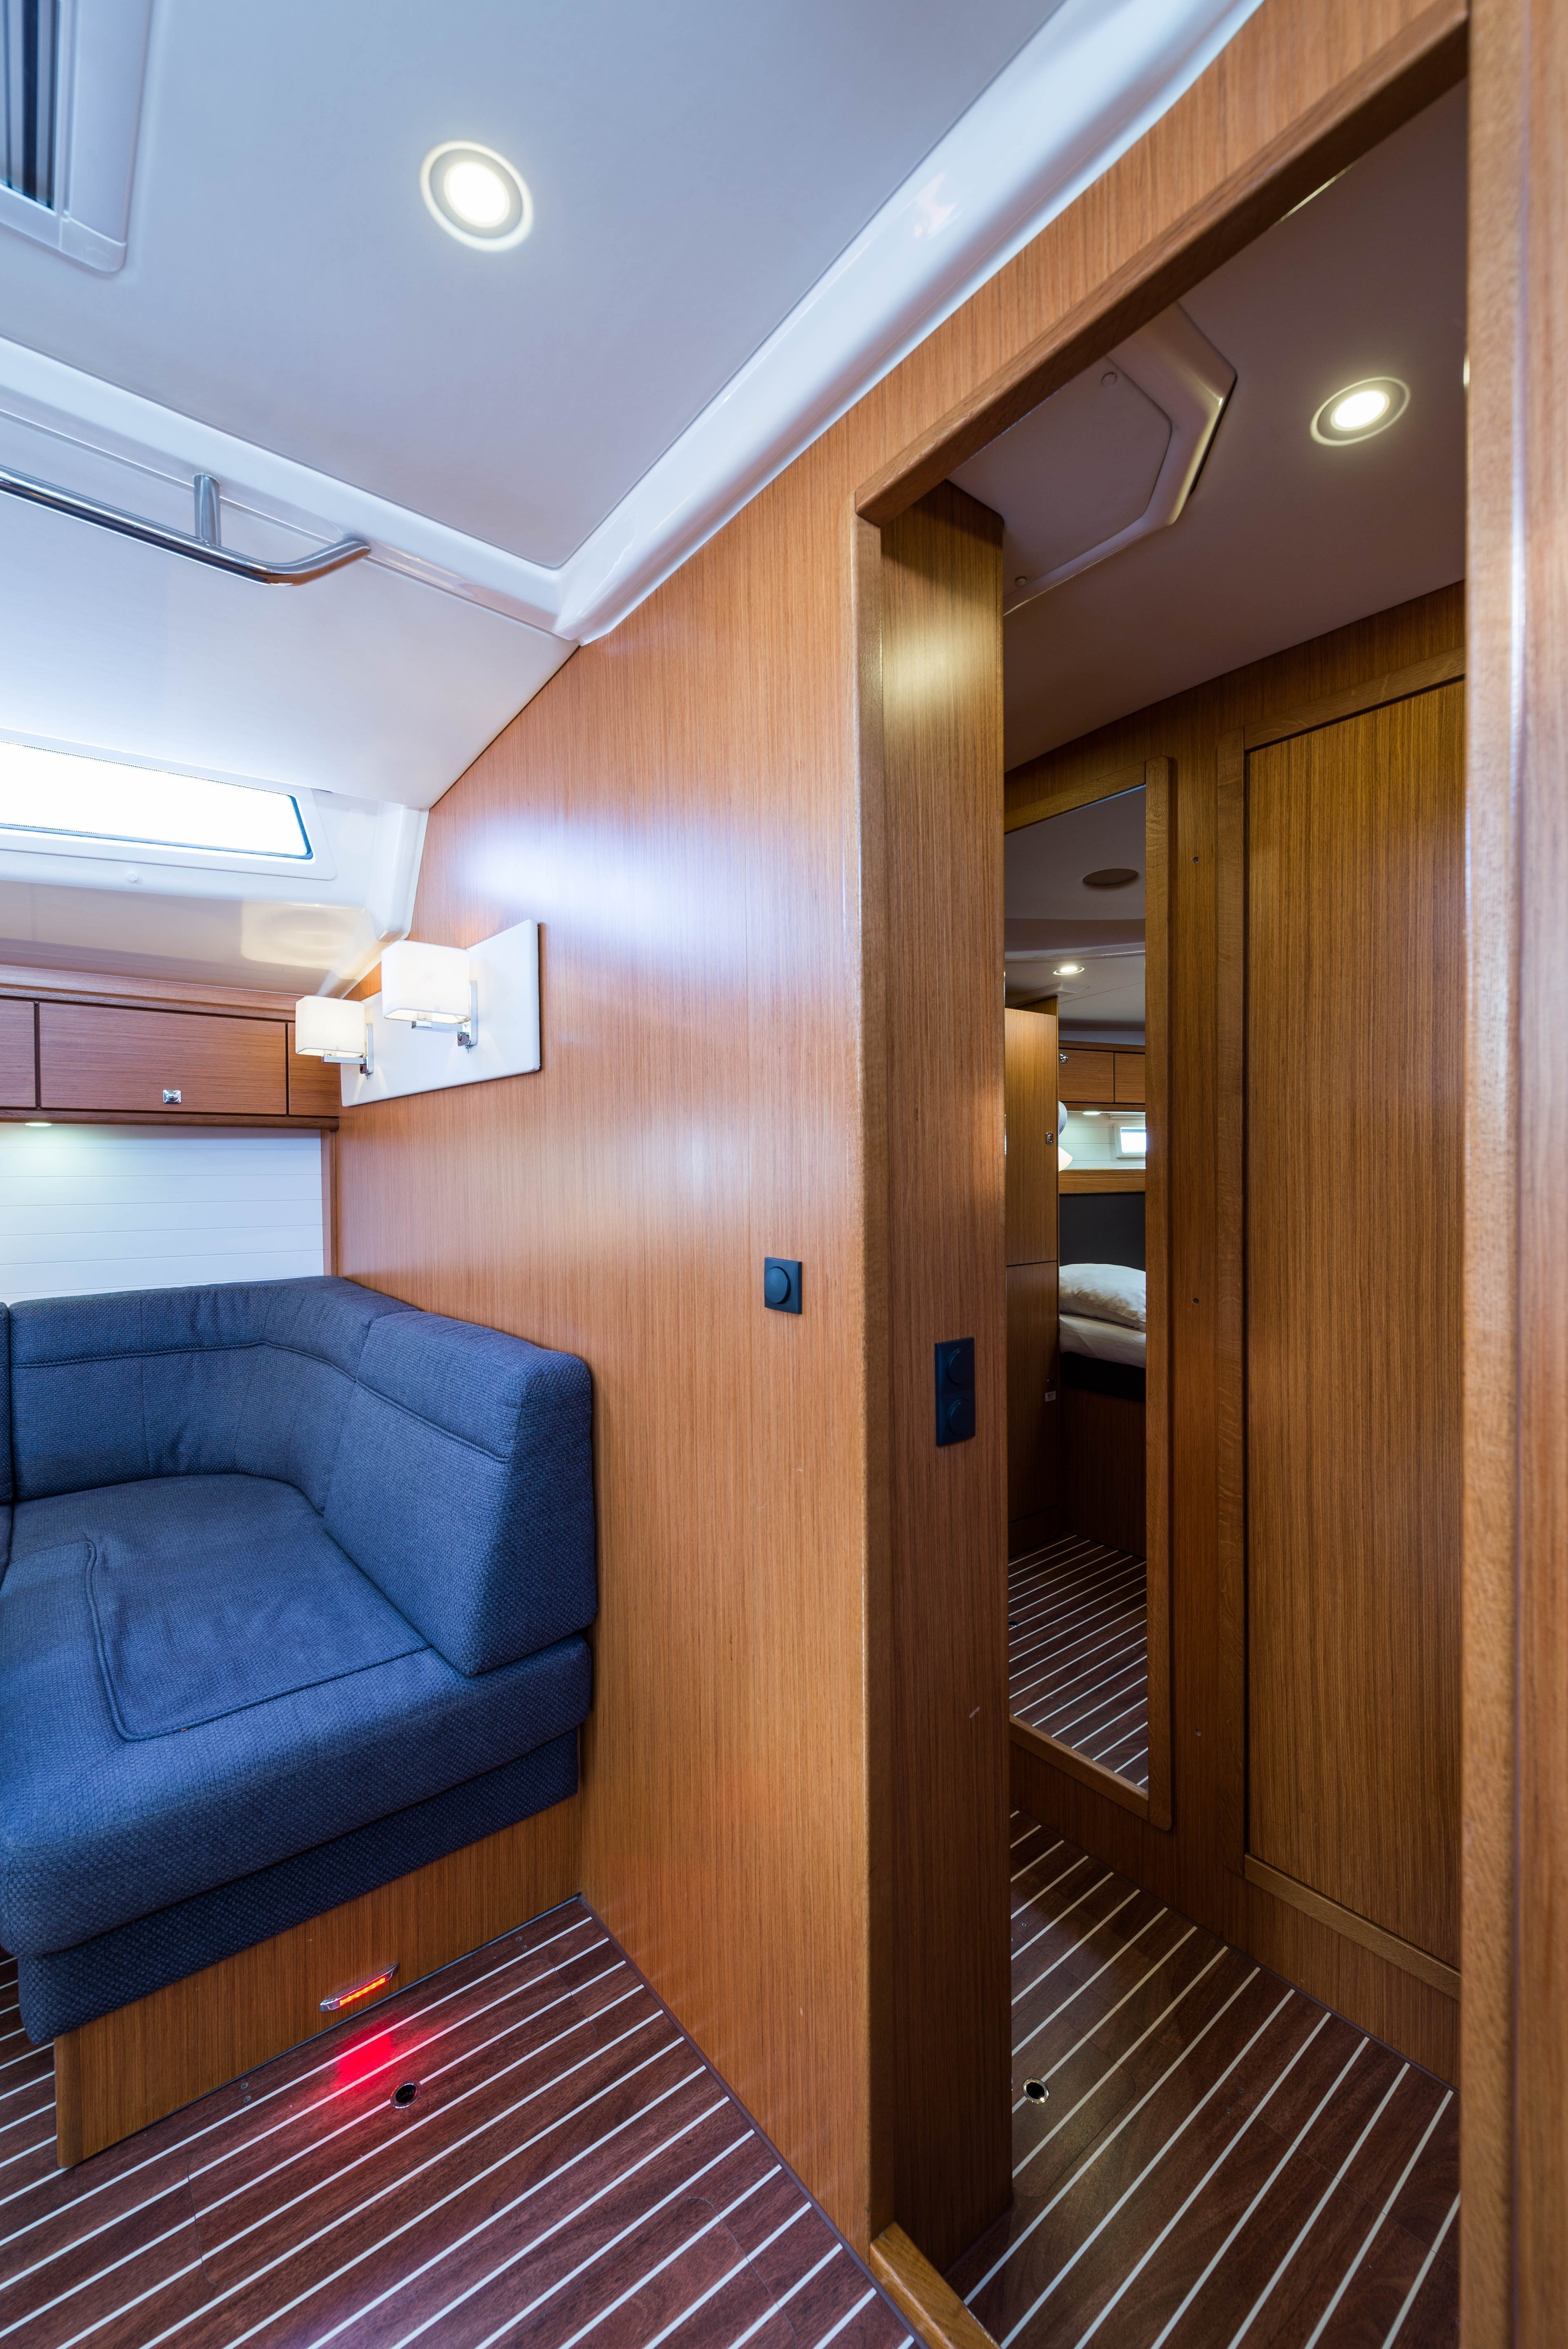 Bavaria Cruiser 56 (Breathless - A/C & Generator)  - 56